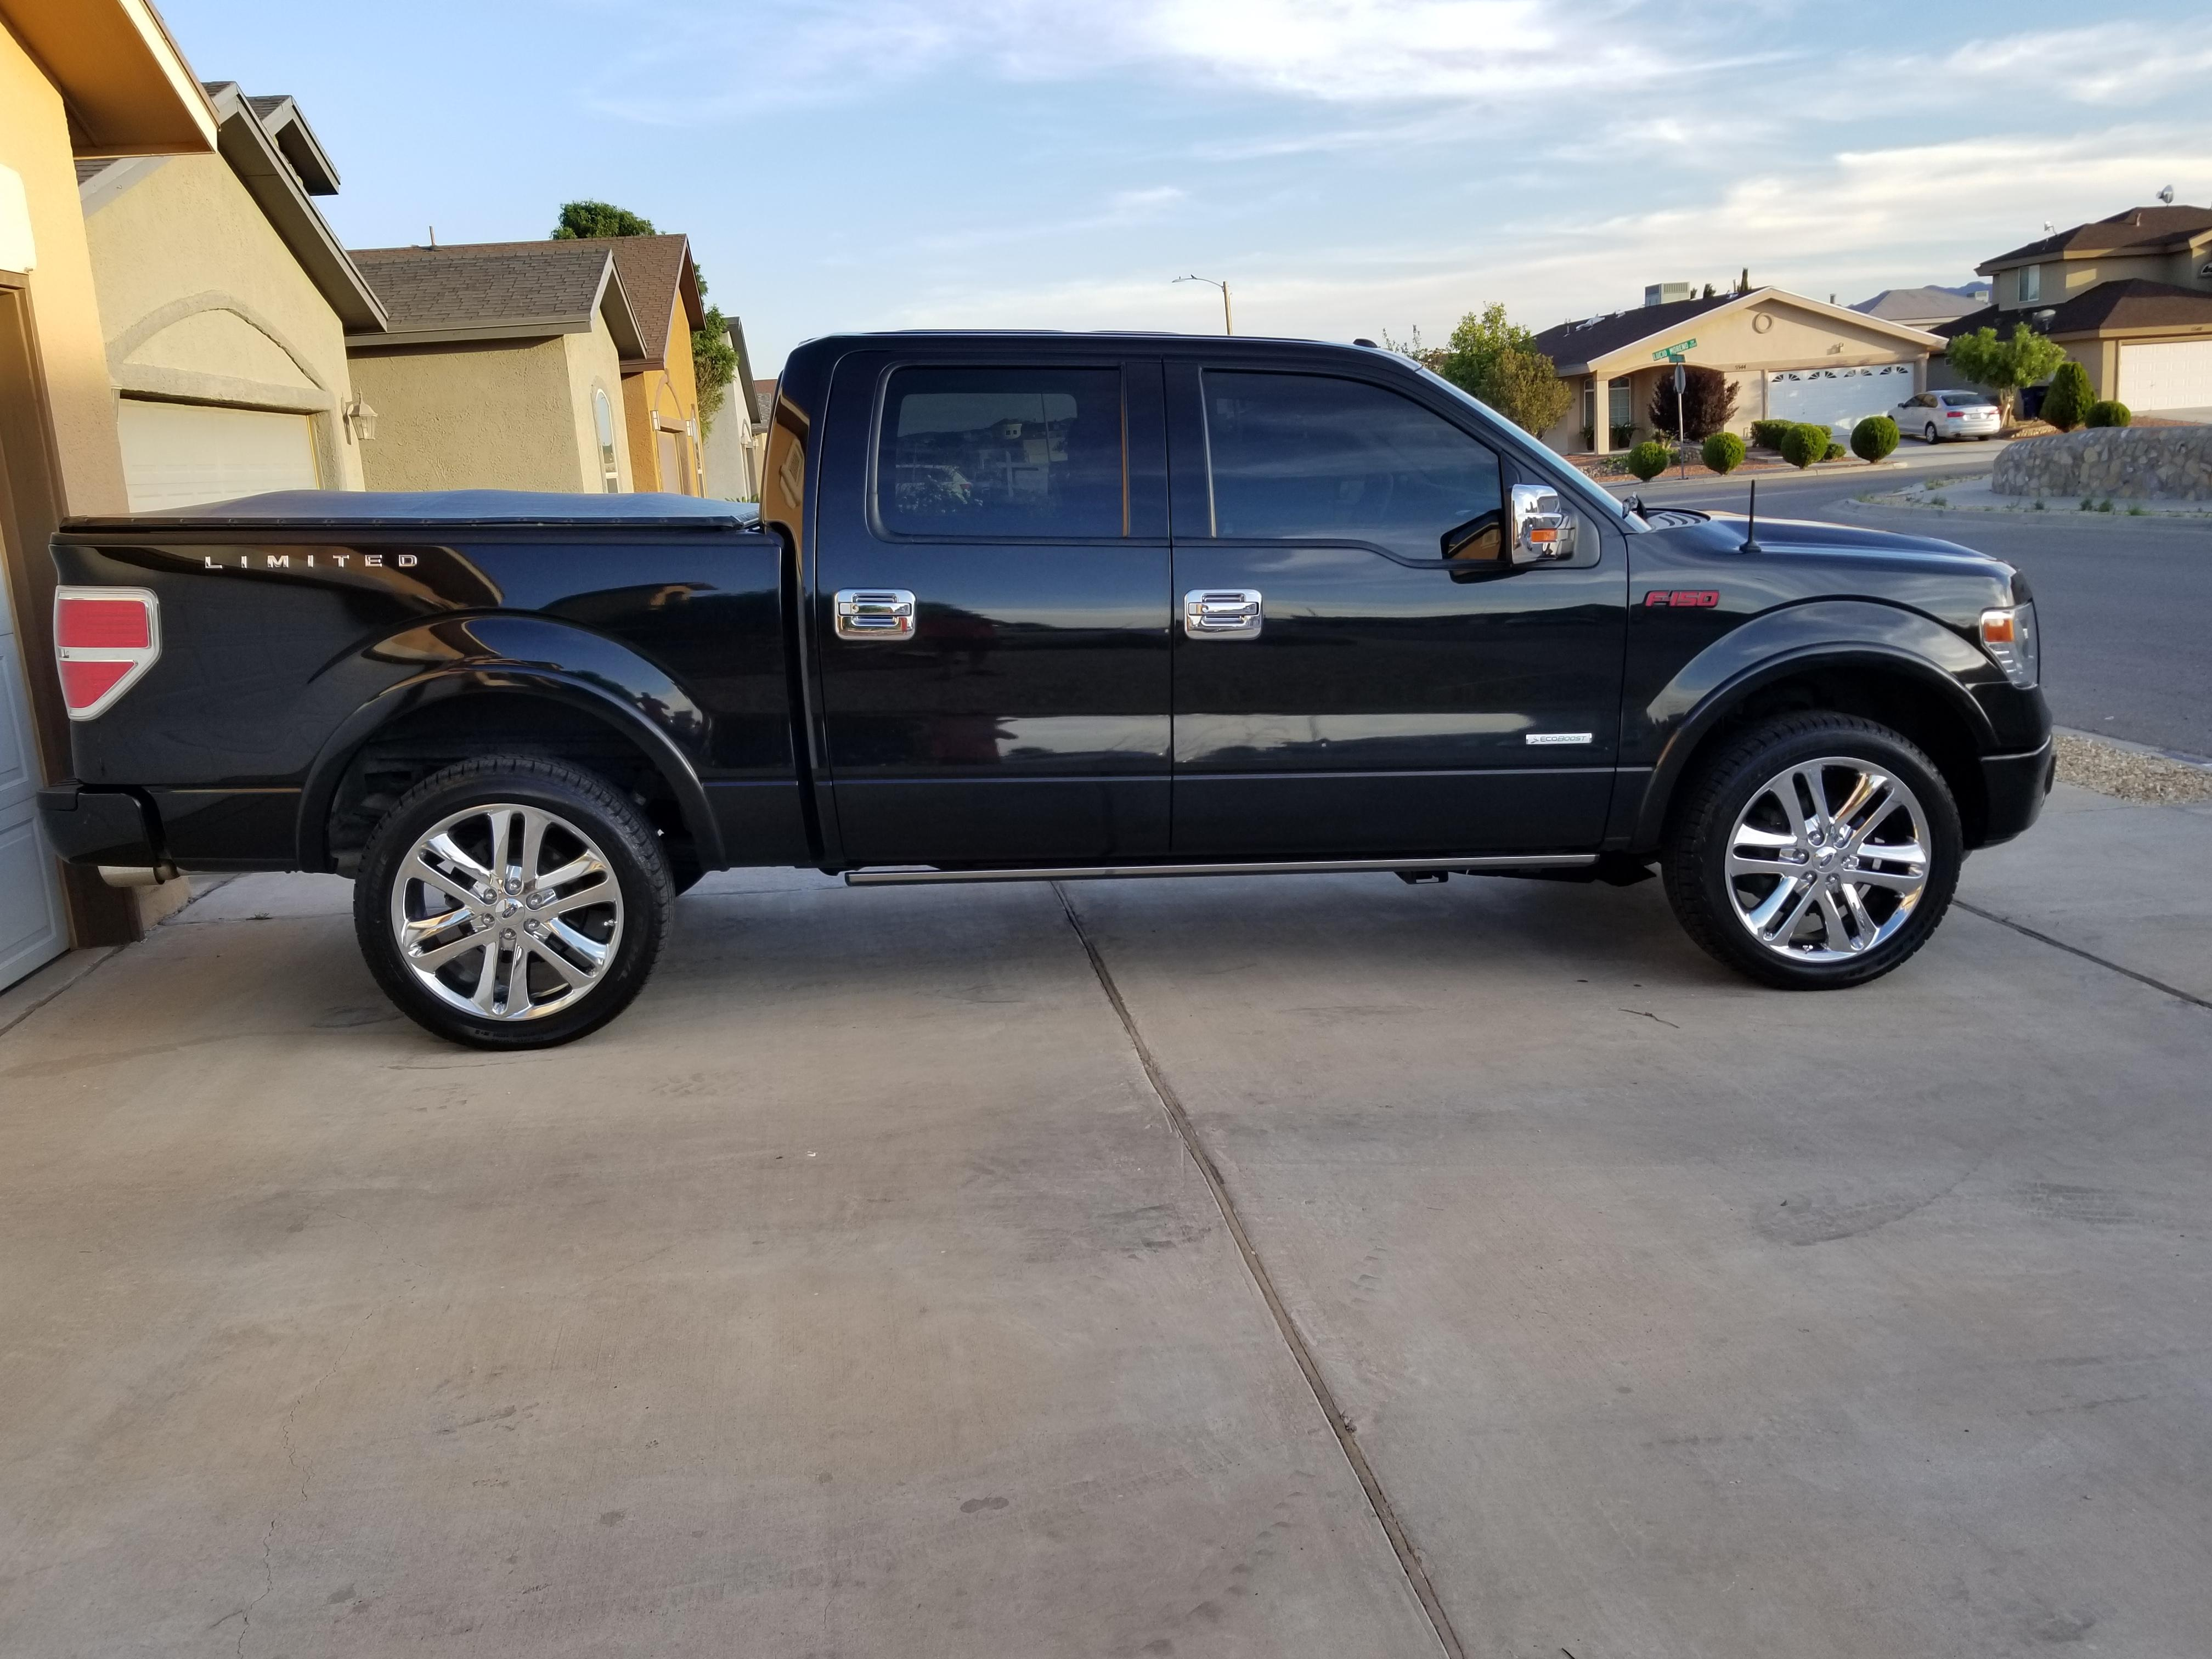 Fits Ford F150 Wheels Fr76 Ford F150 Rims Chrome 22 Inch Ford Truck Rims